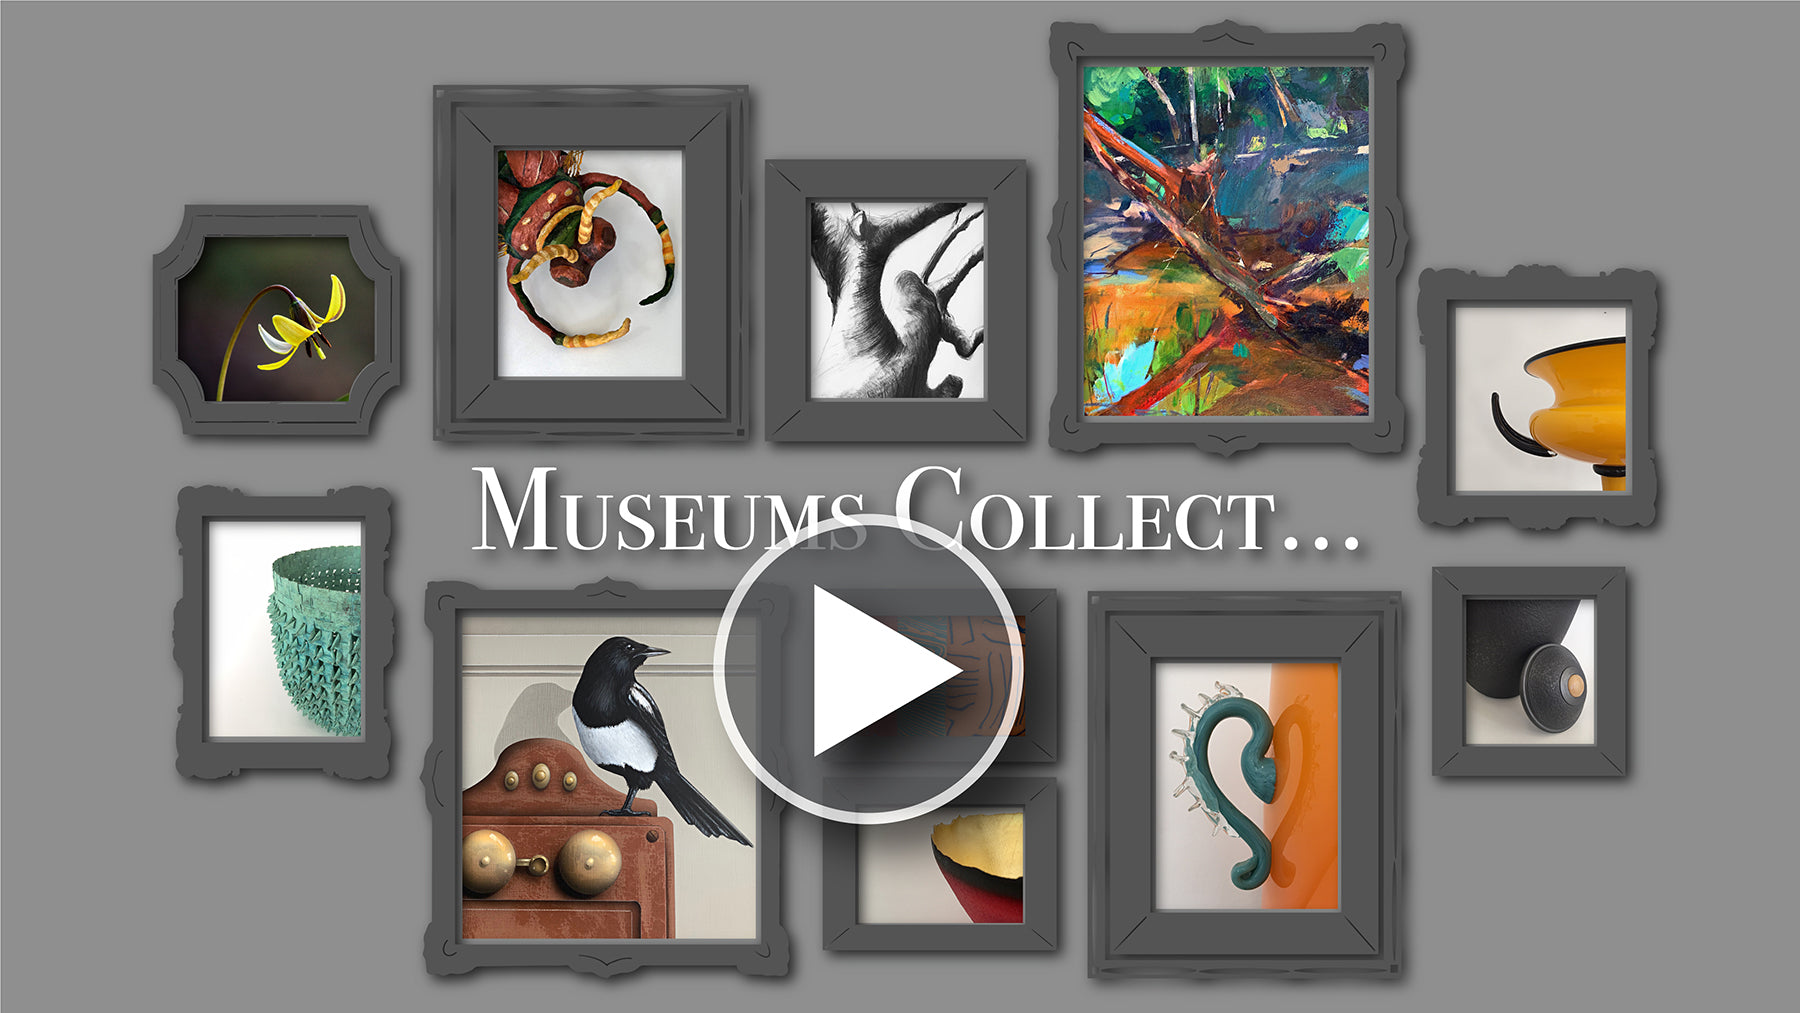 Museums Collect- Online Exhibition